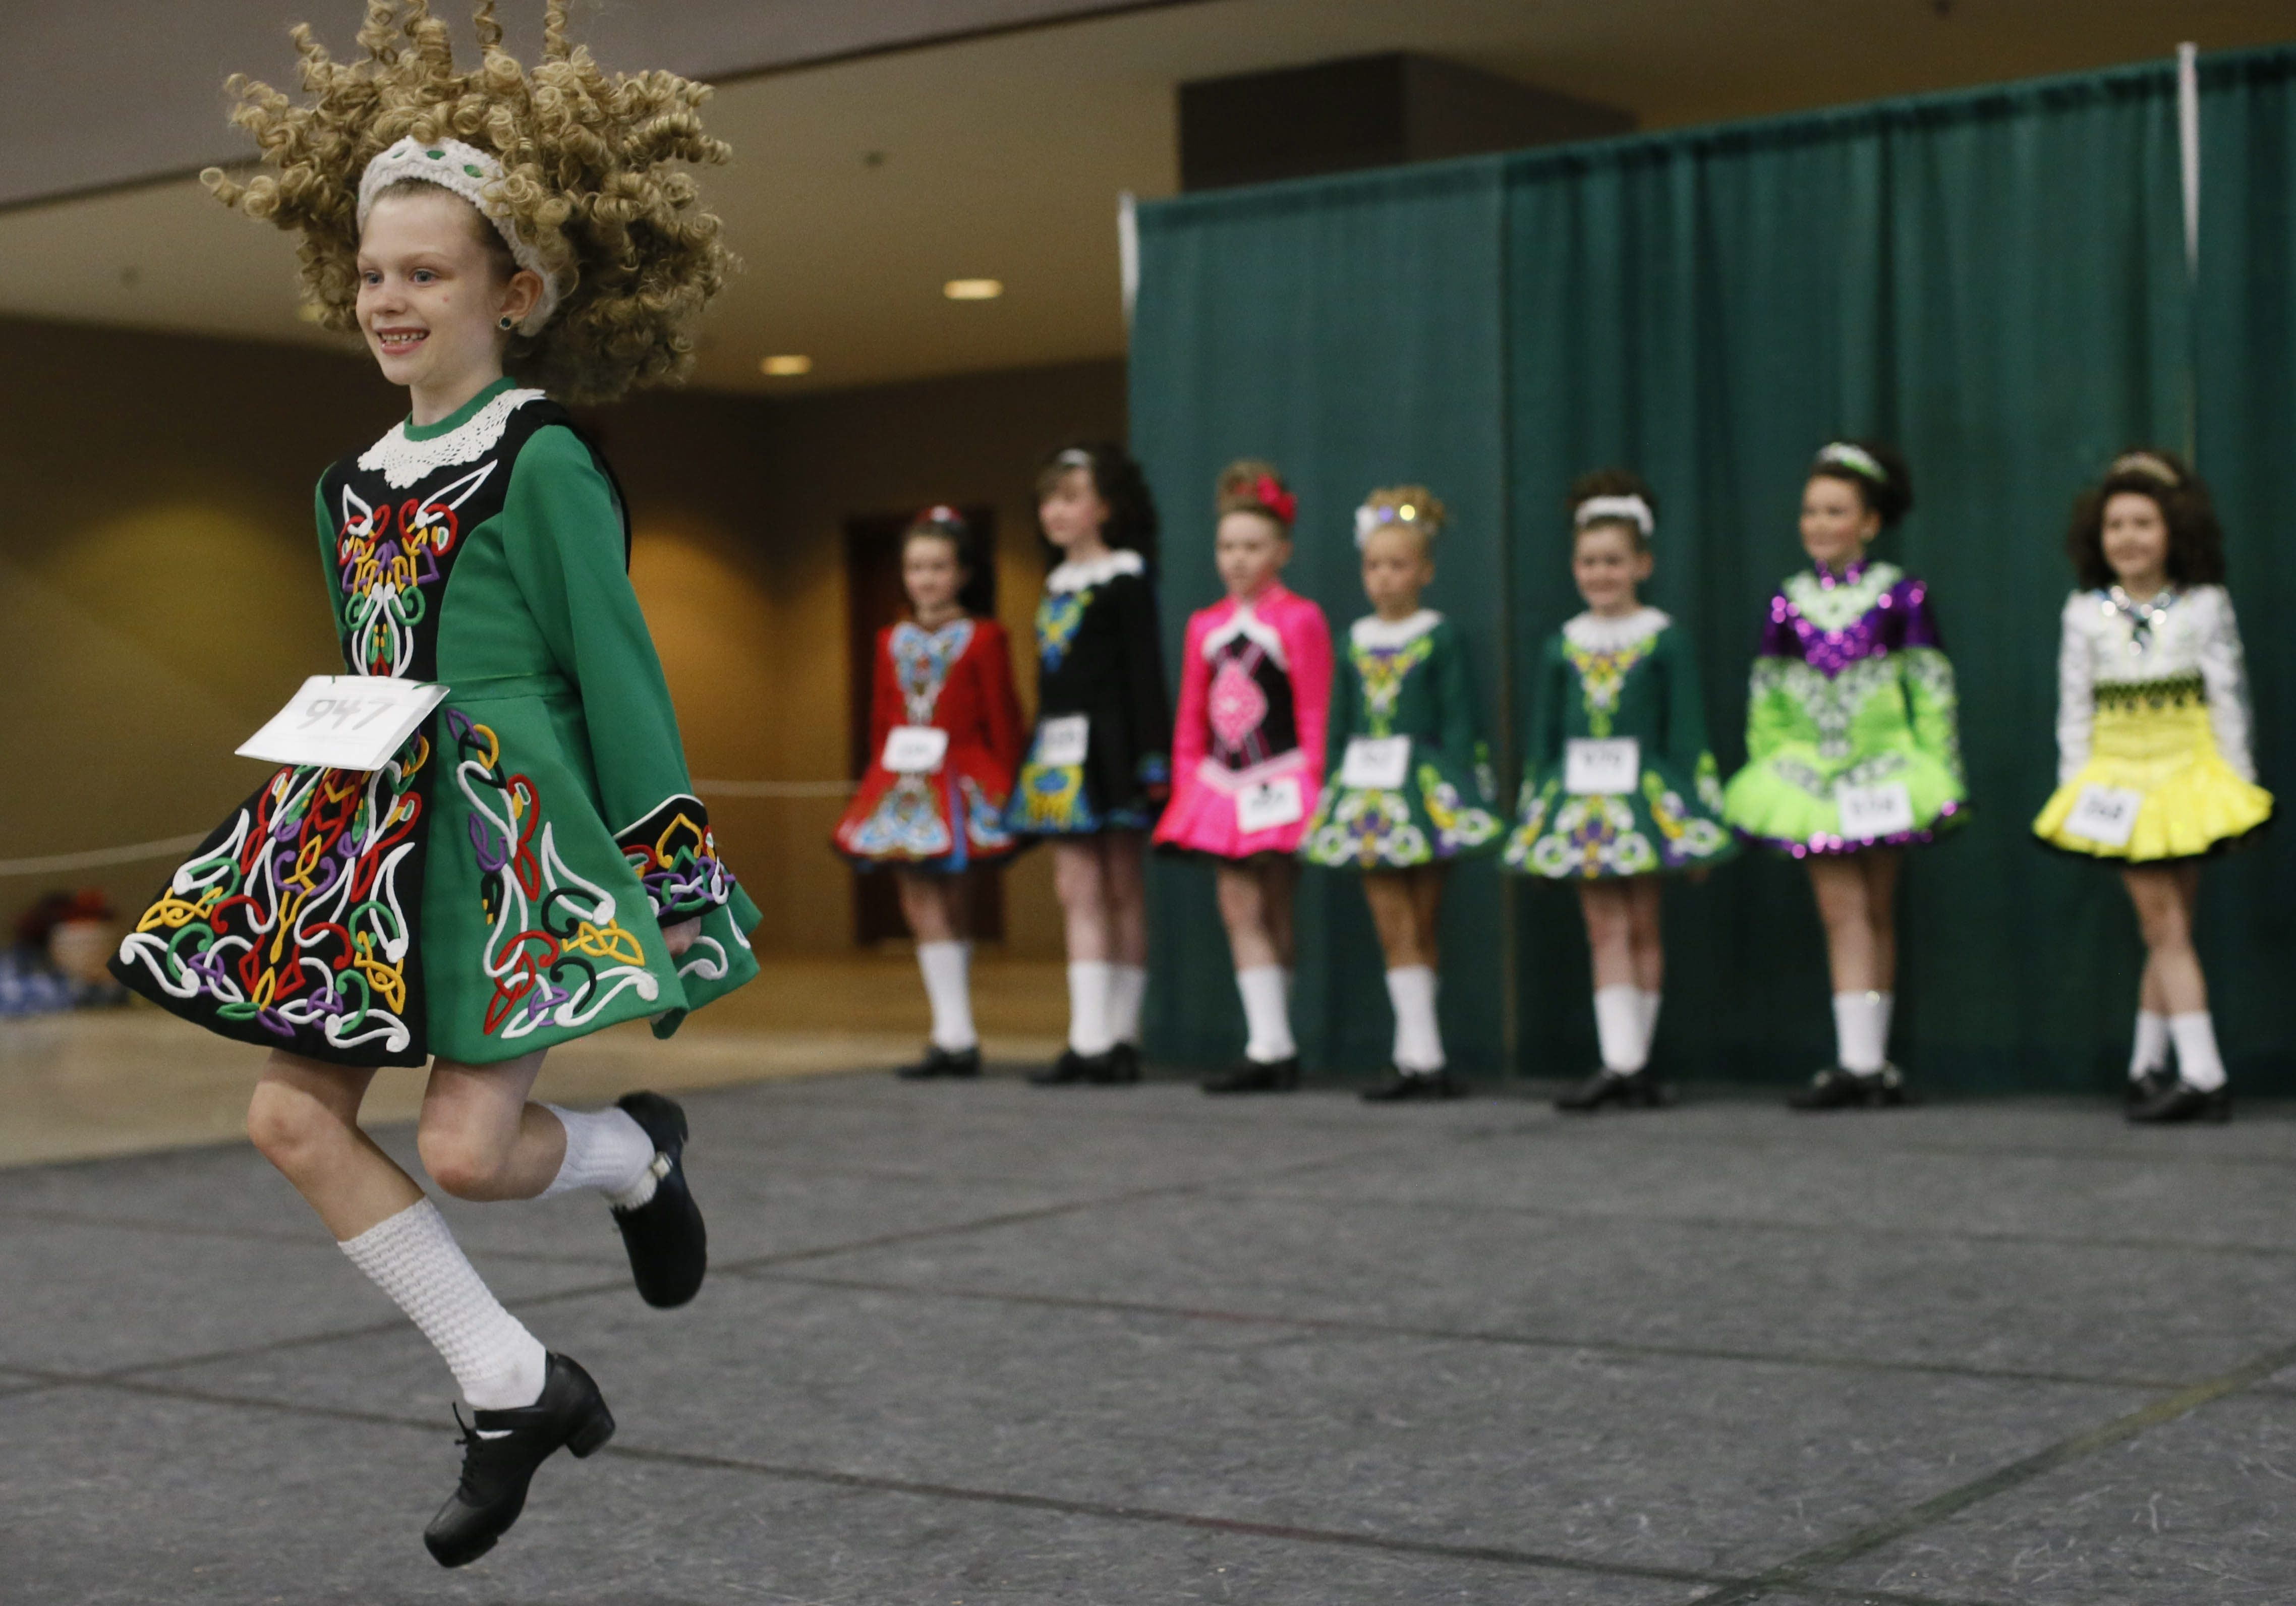 Maeve Lickfeld, 8, of Buffalo, takes her turn Irish dancing for the judges at the 50th annual Buffalo Feis at the Fairgrounds Event Center on Saturday in Hamburg.